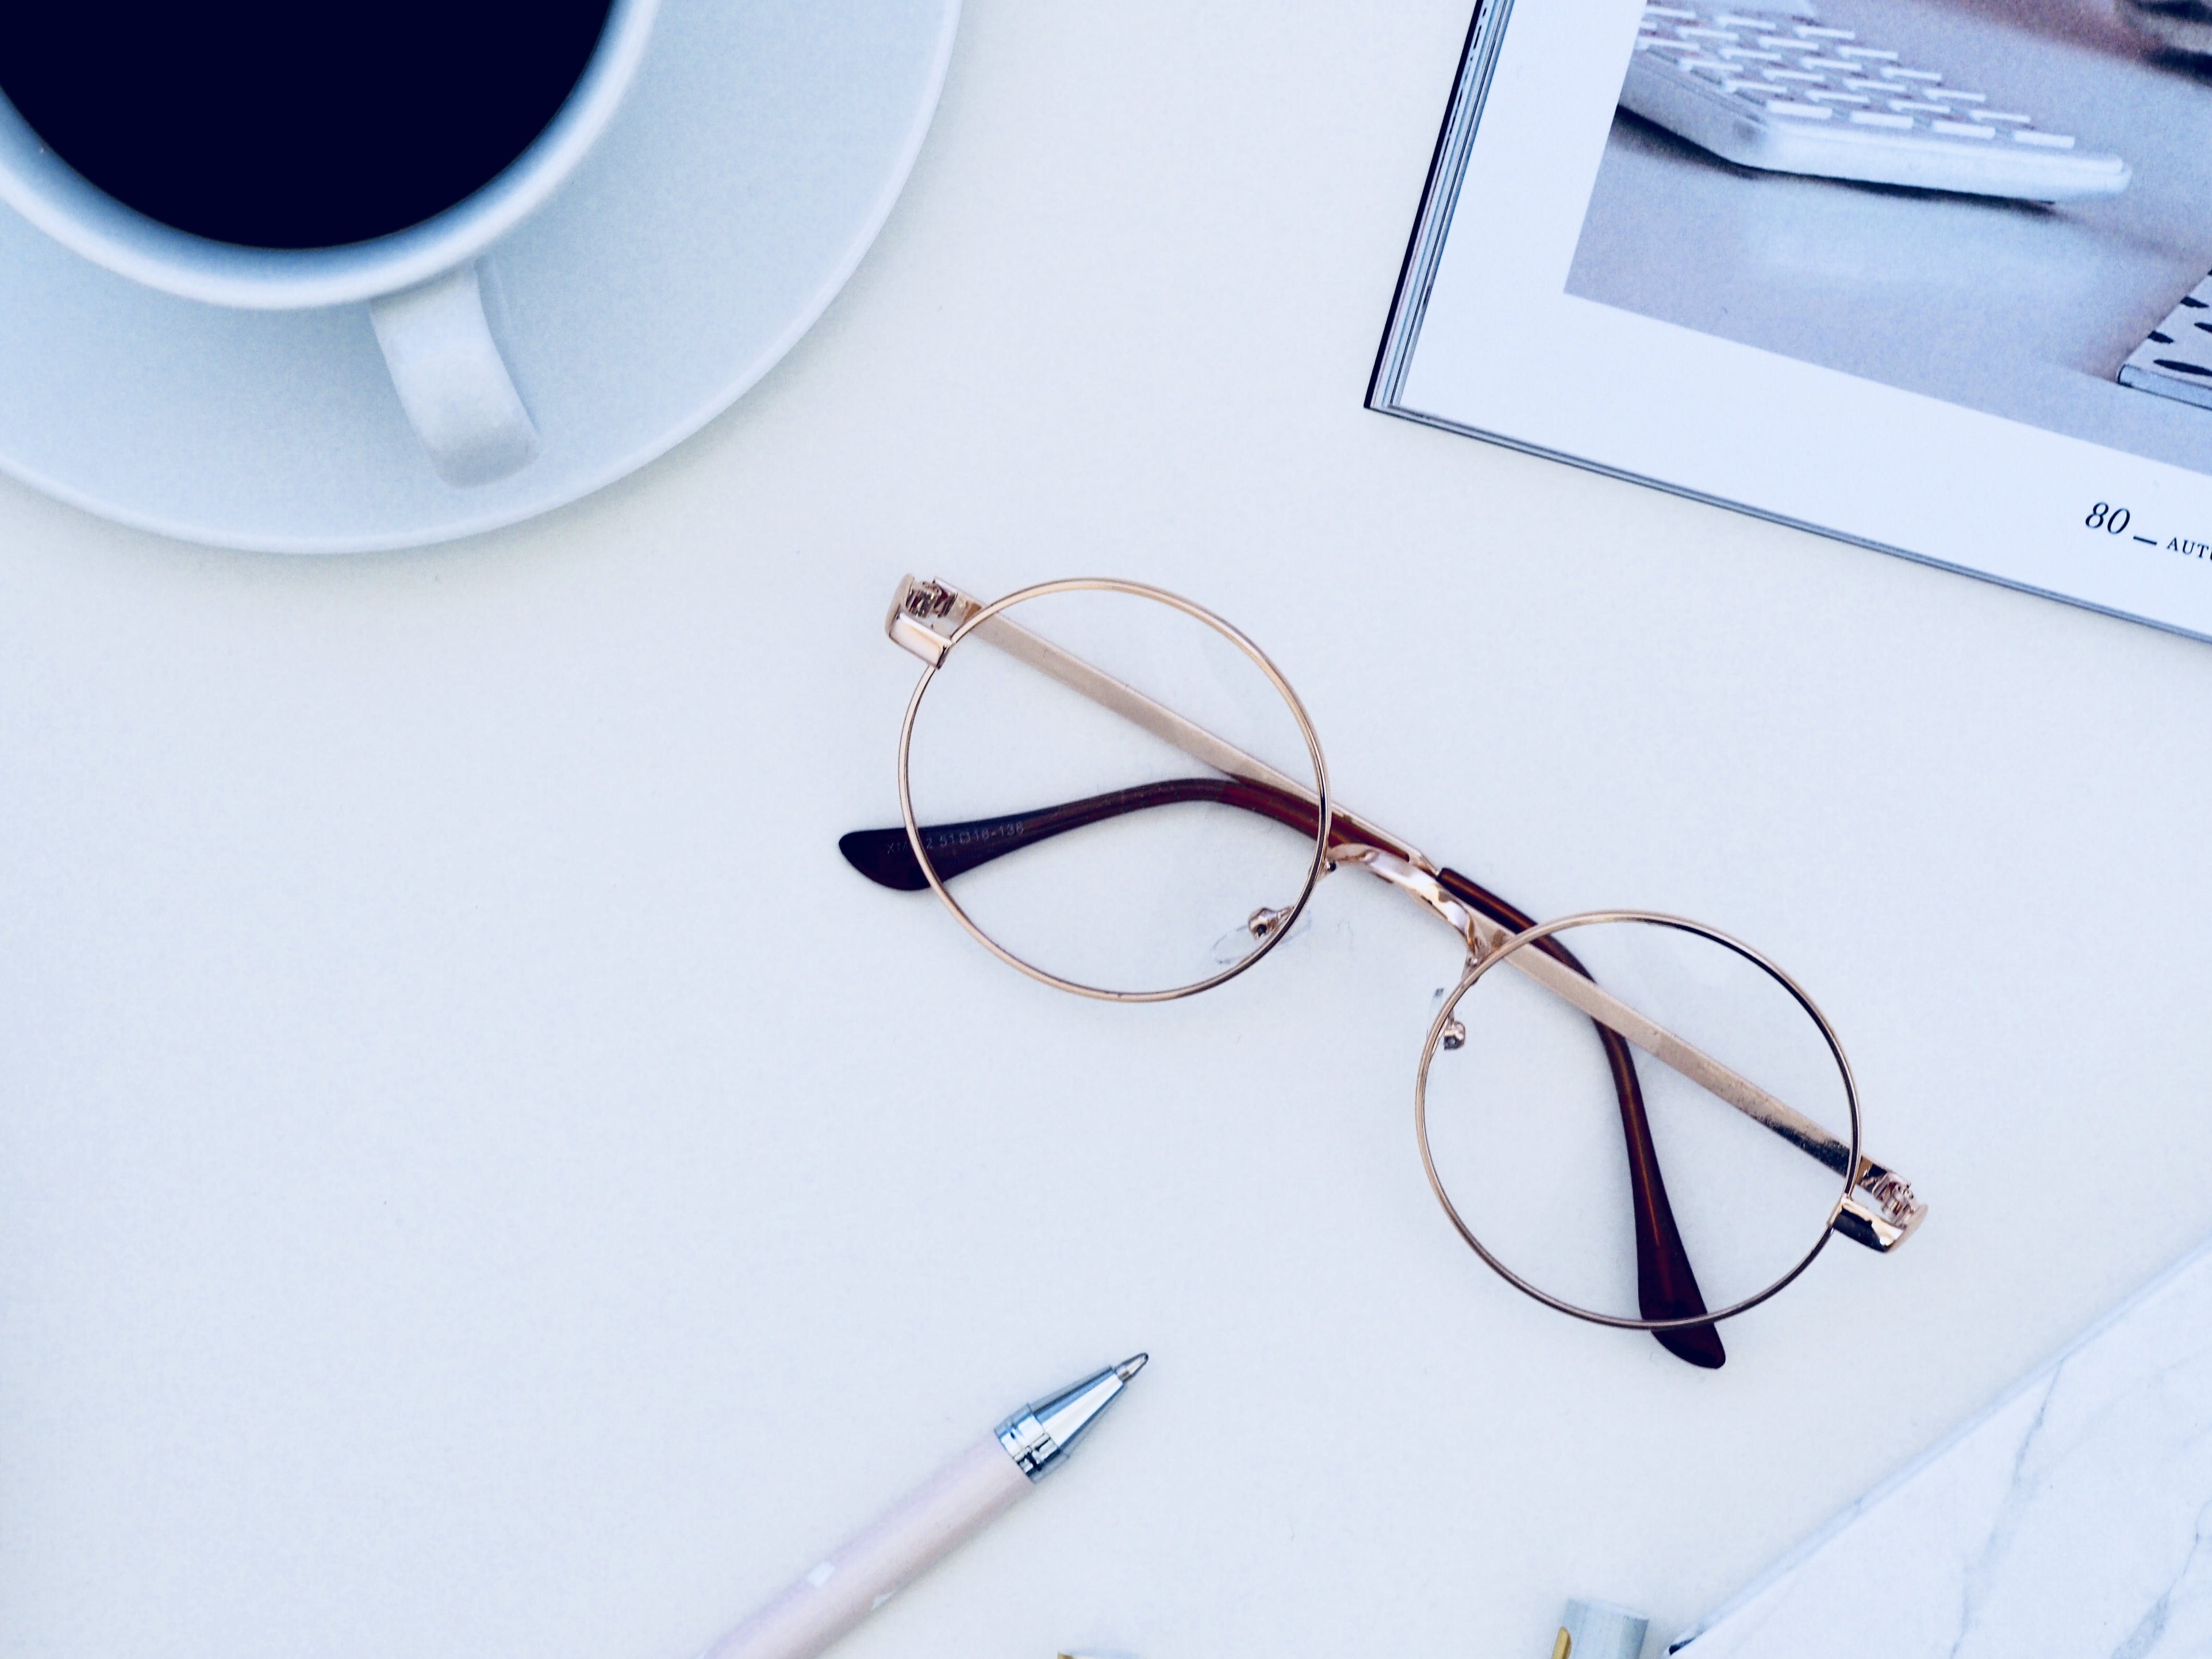 Brown Framed Eyeglasses Near Cup of Coffee on White Surface